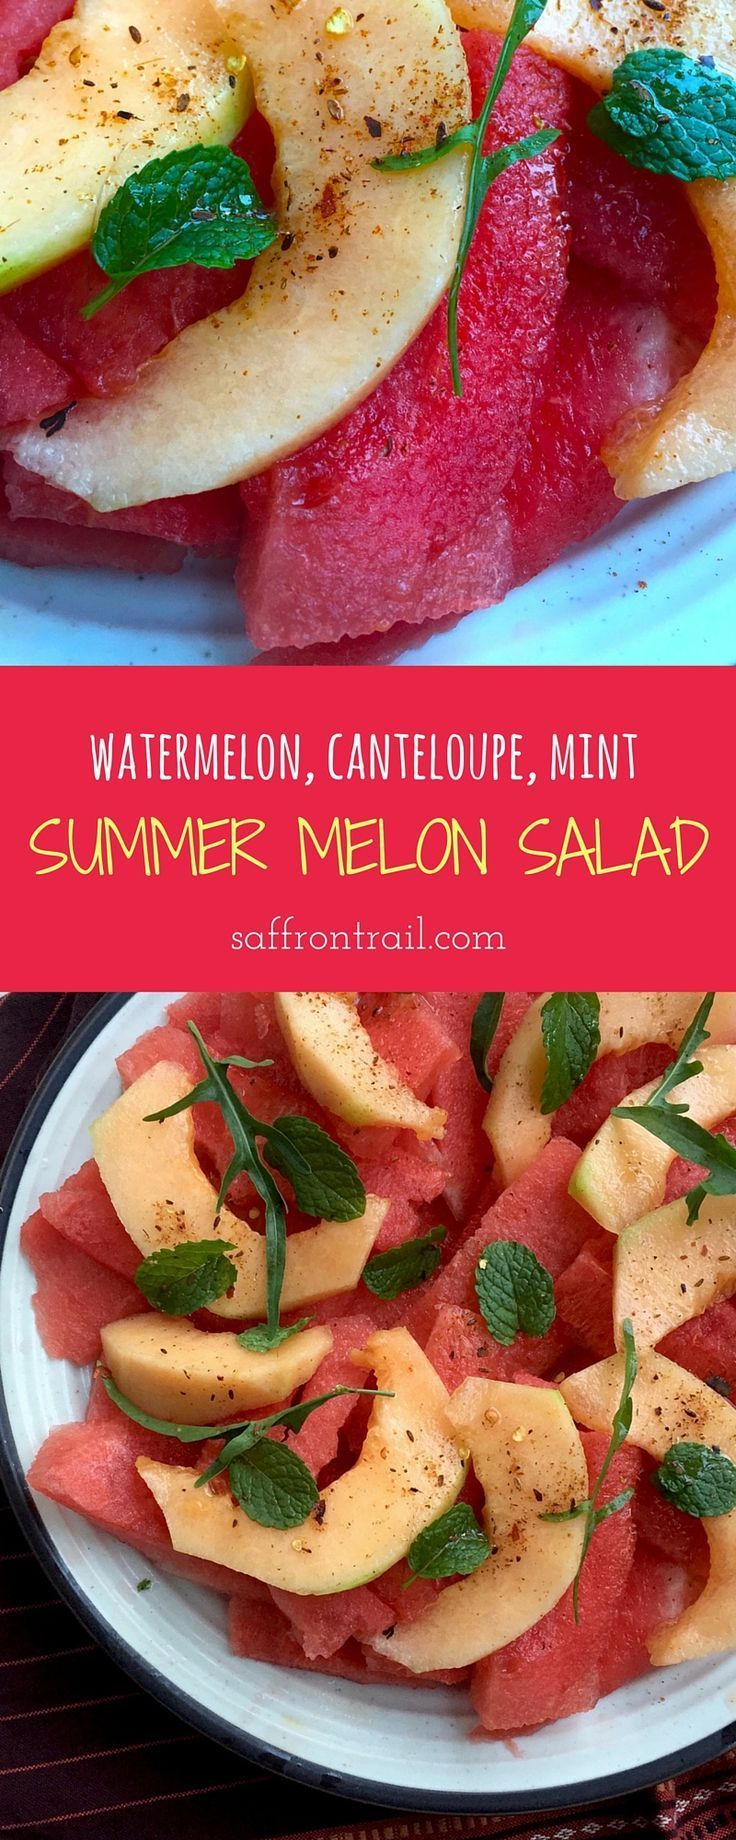 Summer Melon Salad - Slices of watermelon, cantaloupe, topped with mint leaves and rocket and a freshly ground chilli salt, HEAVENLY when served chilled for a summer lunch or dinner. #summerrecipes http://www.saffrontrail.com/summer-melon-salad-watermelon-cantaloupe-salad